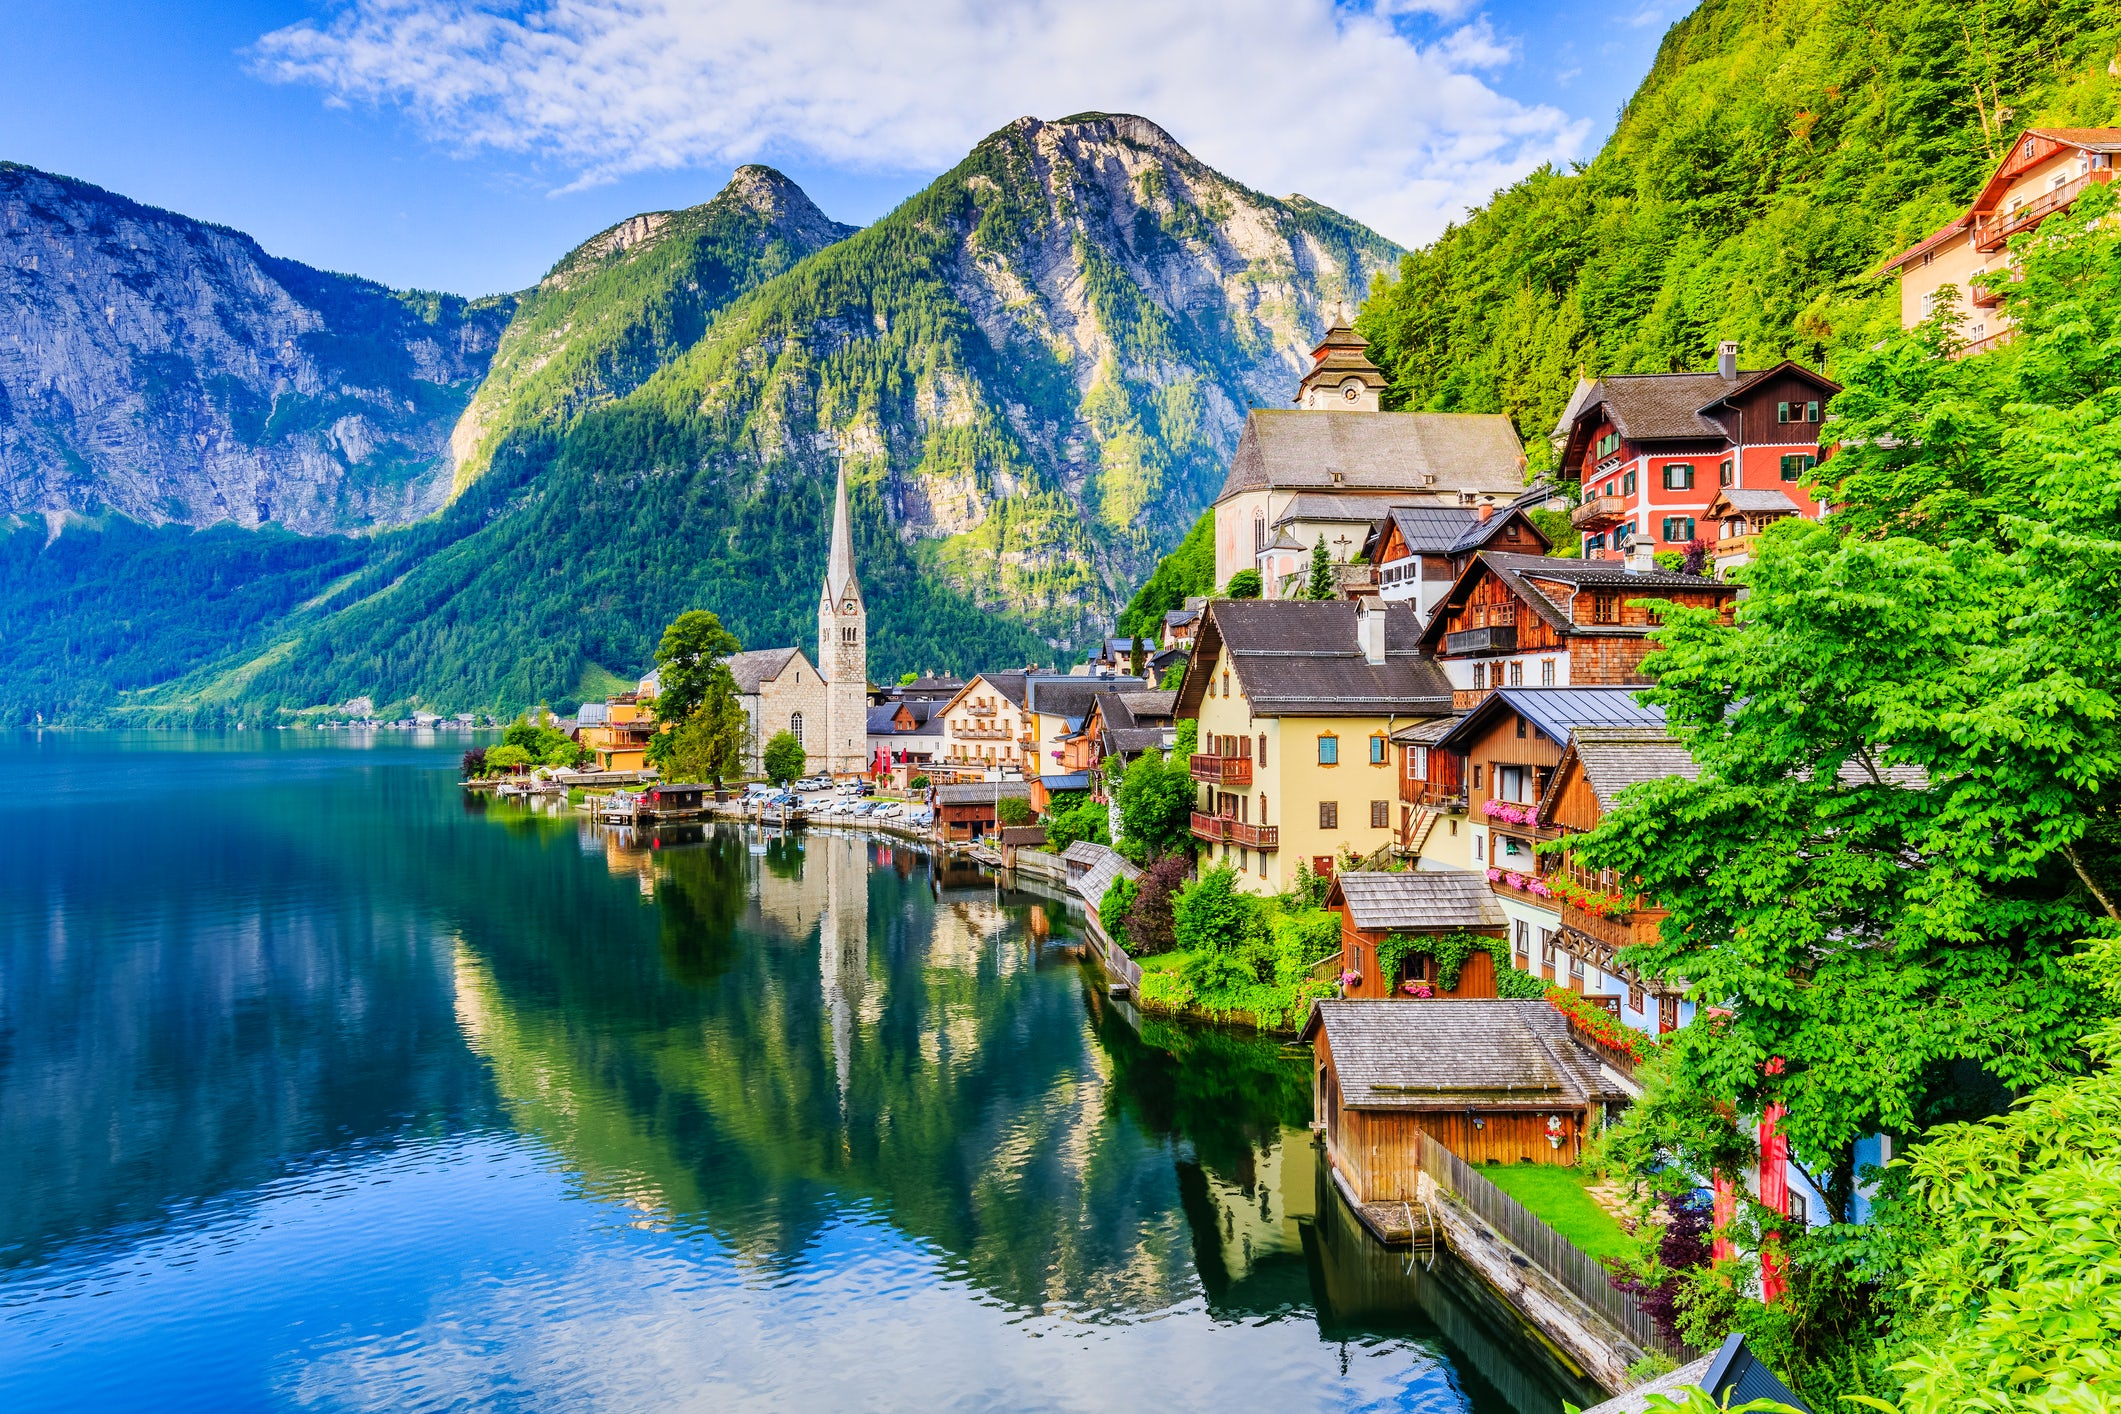 Why did Chinese made full size copy of Hallstatt?